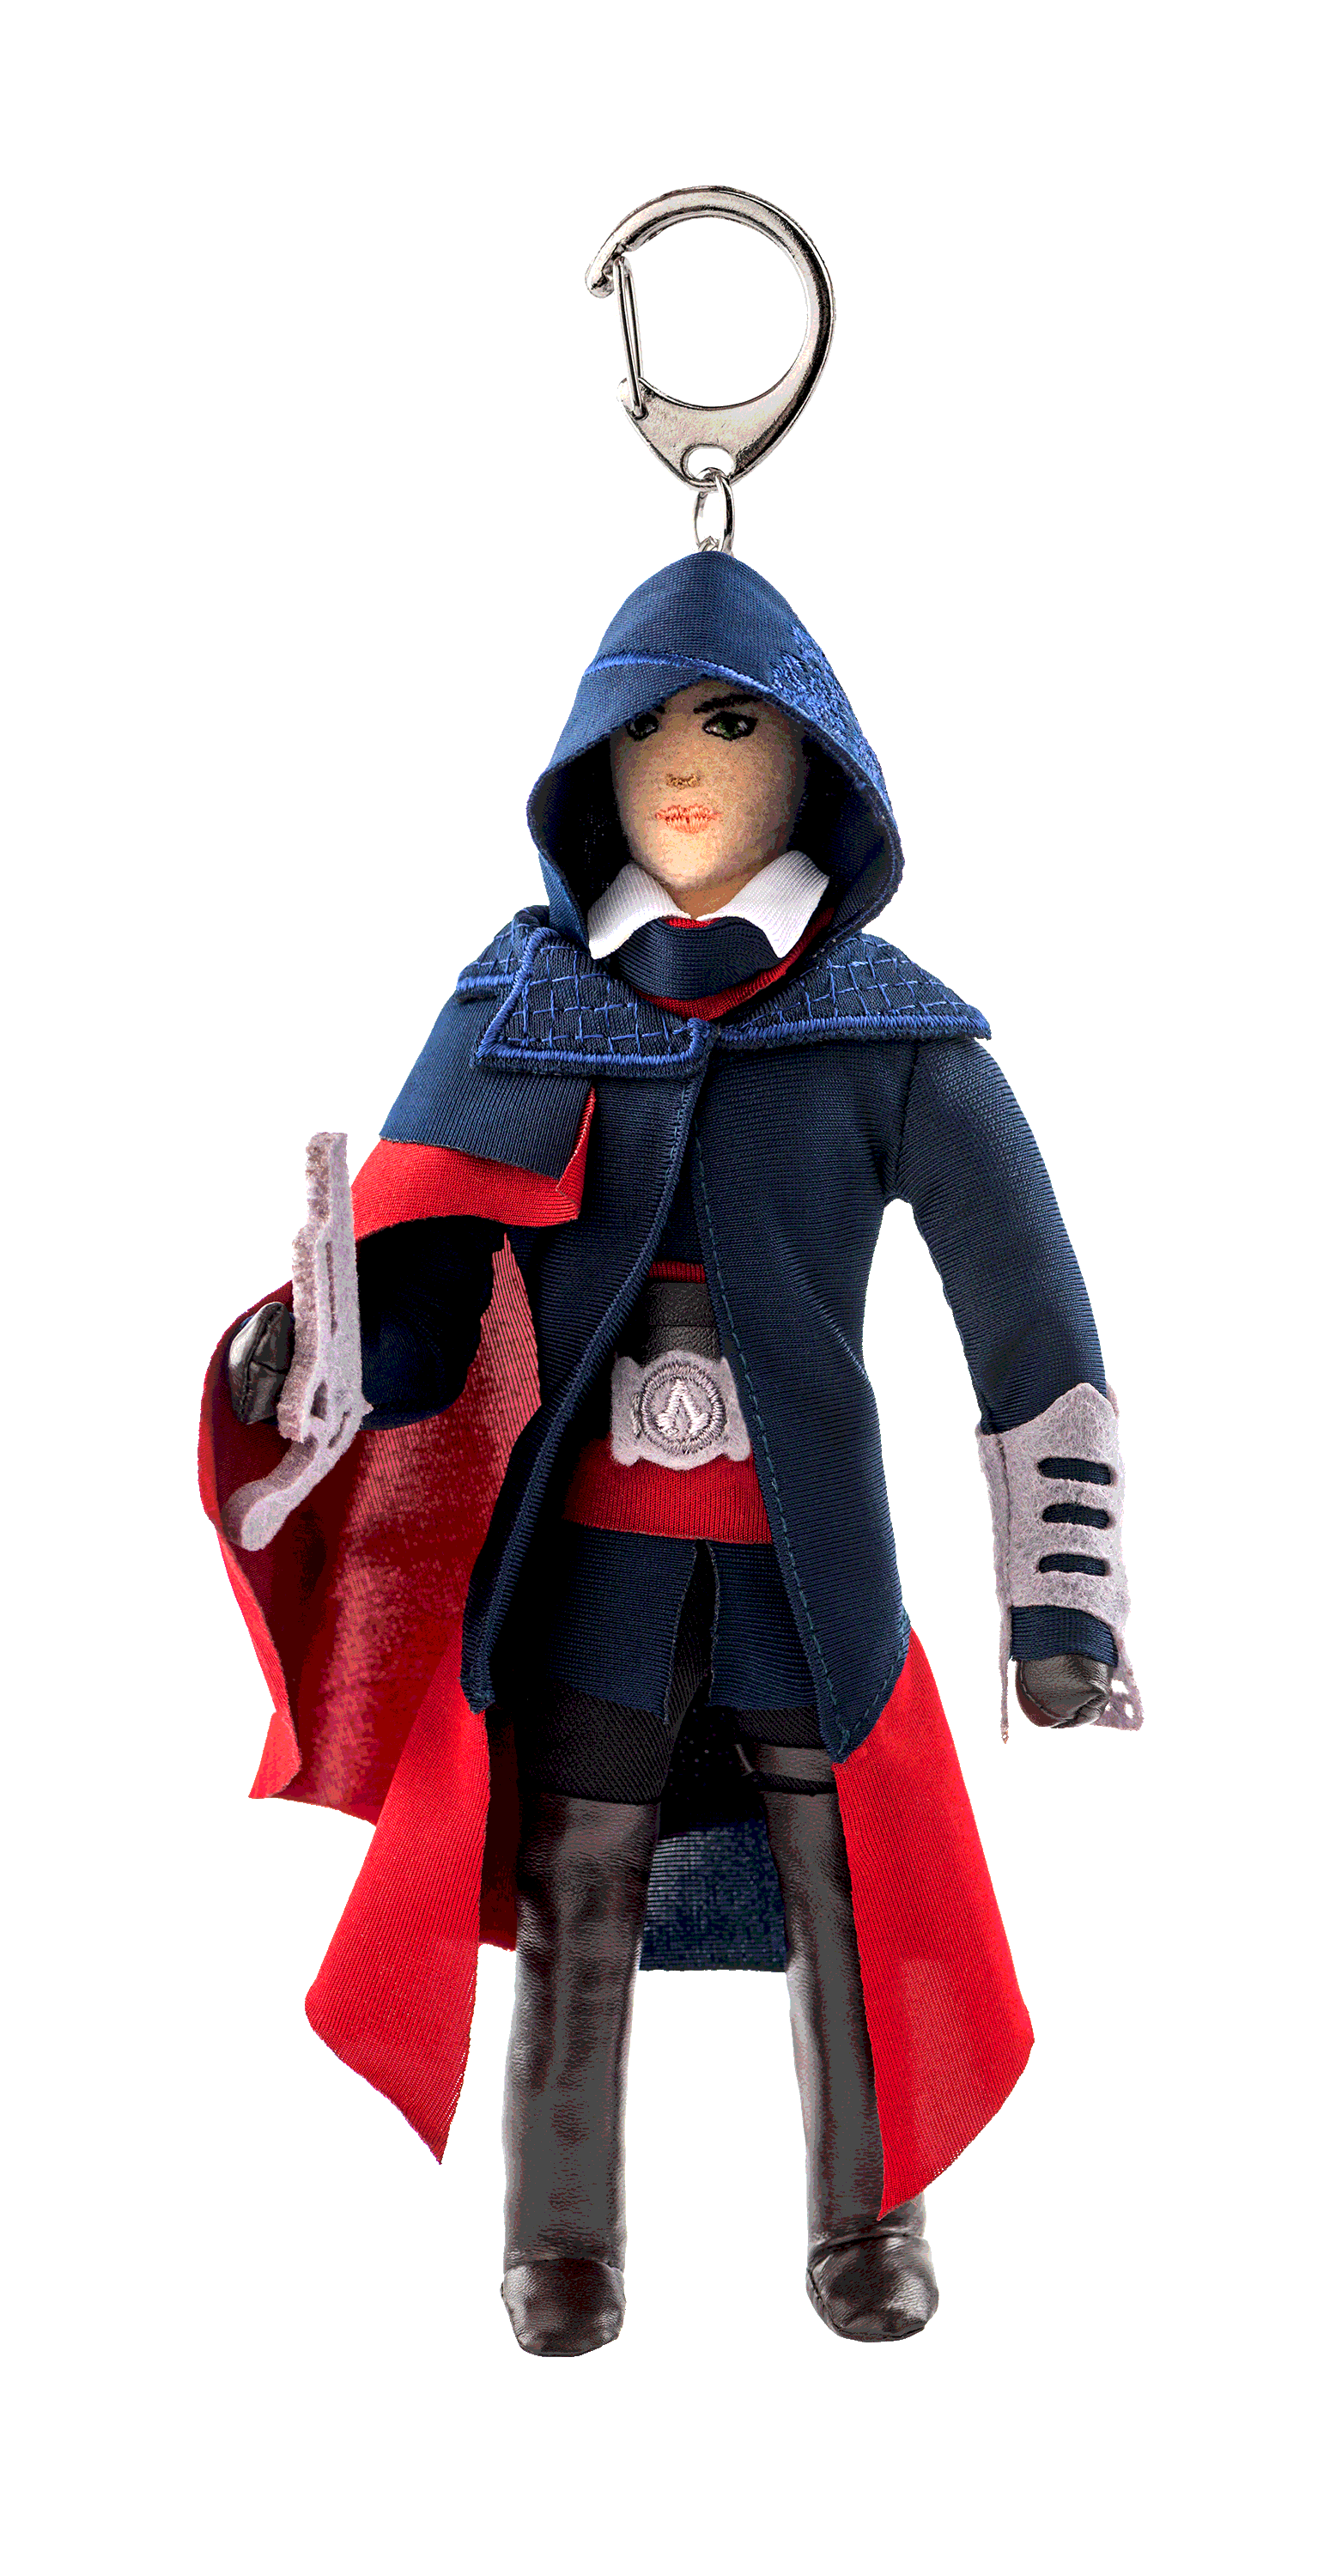 Plush Keychain Evie Frye From The Assassin S Creed Syndicate Game Buy An Official Merchandise Eviefrye jacobfrye assassinscreed assassinscreedsyndicate connorkenway edwardkenway henrygreen assassin ezioauditore syndicate. plush keychain evie frye from the